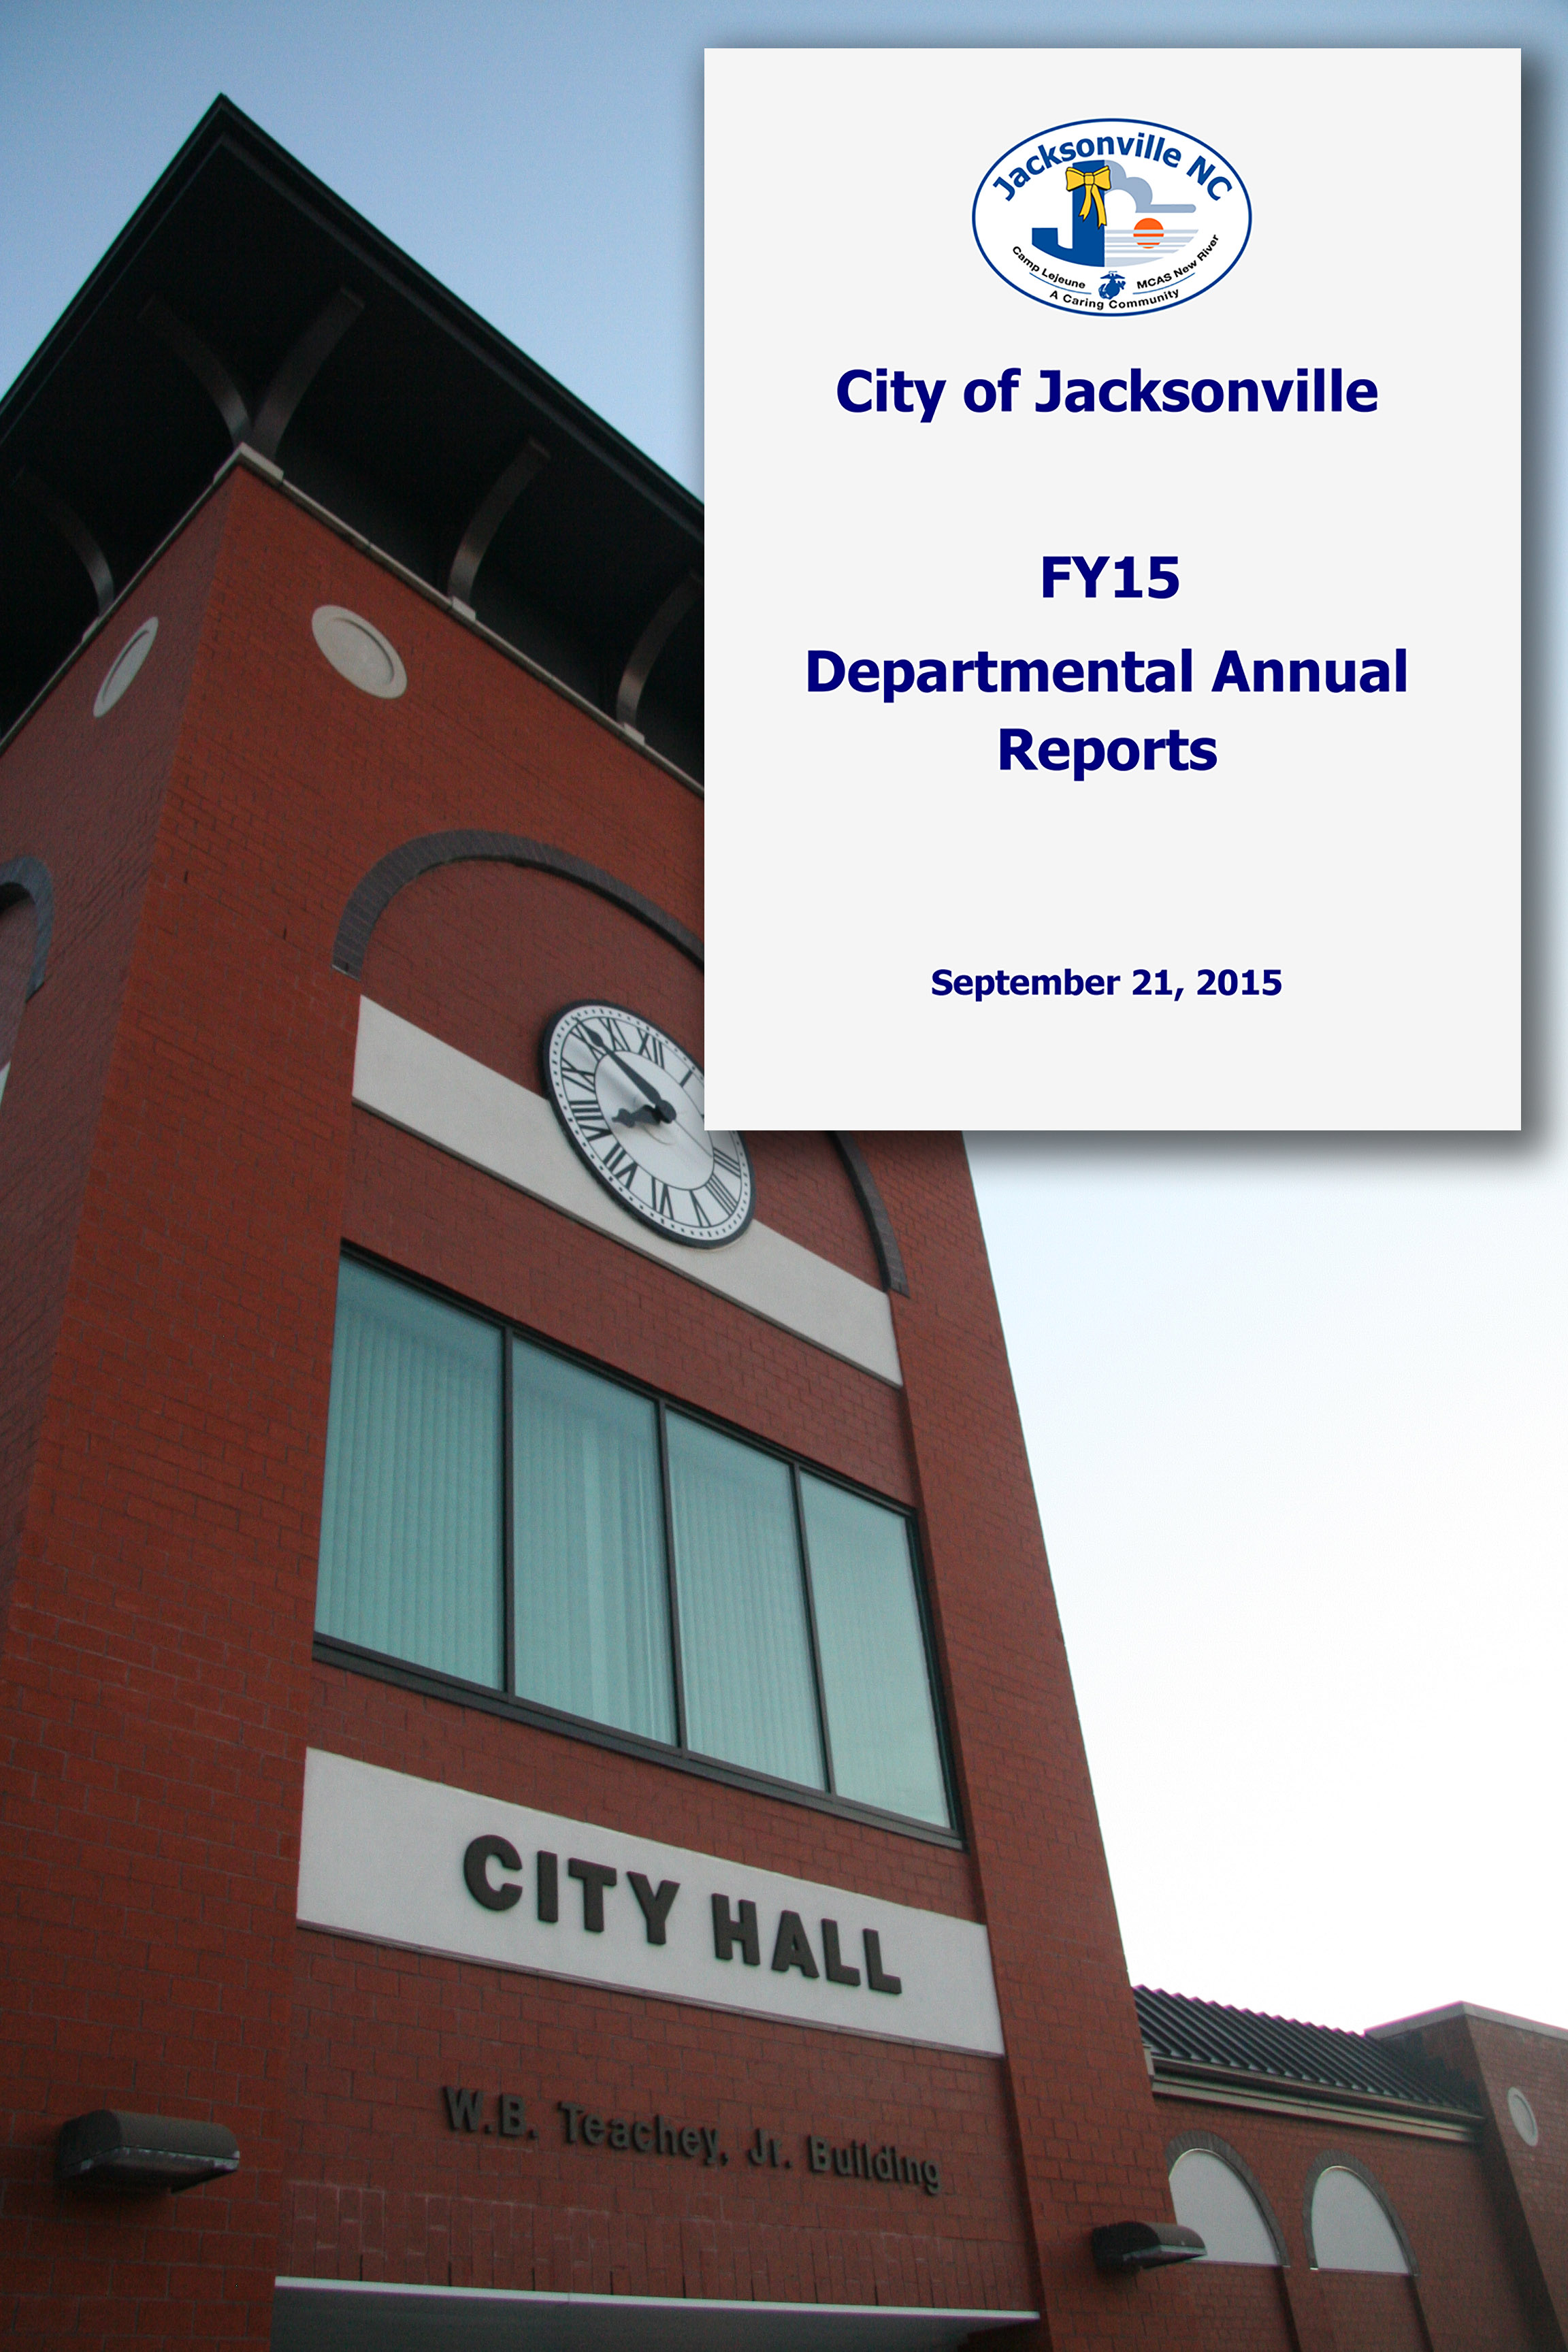 City of Jacksonville - FY15 Departmental Annual Reports